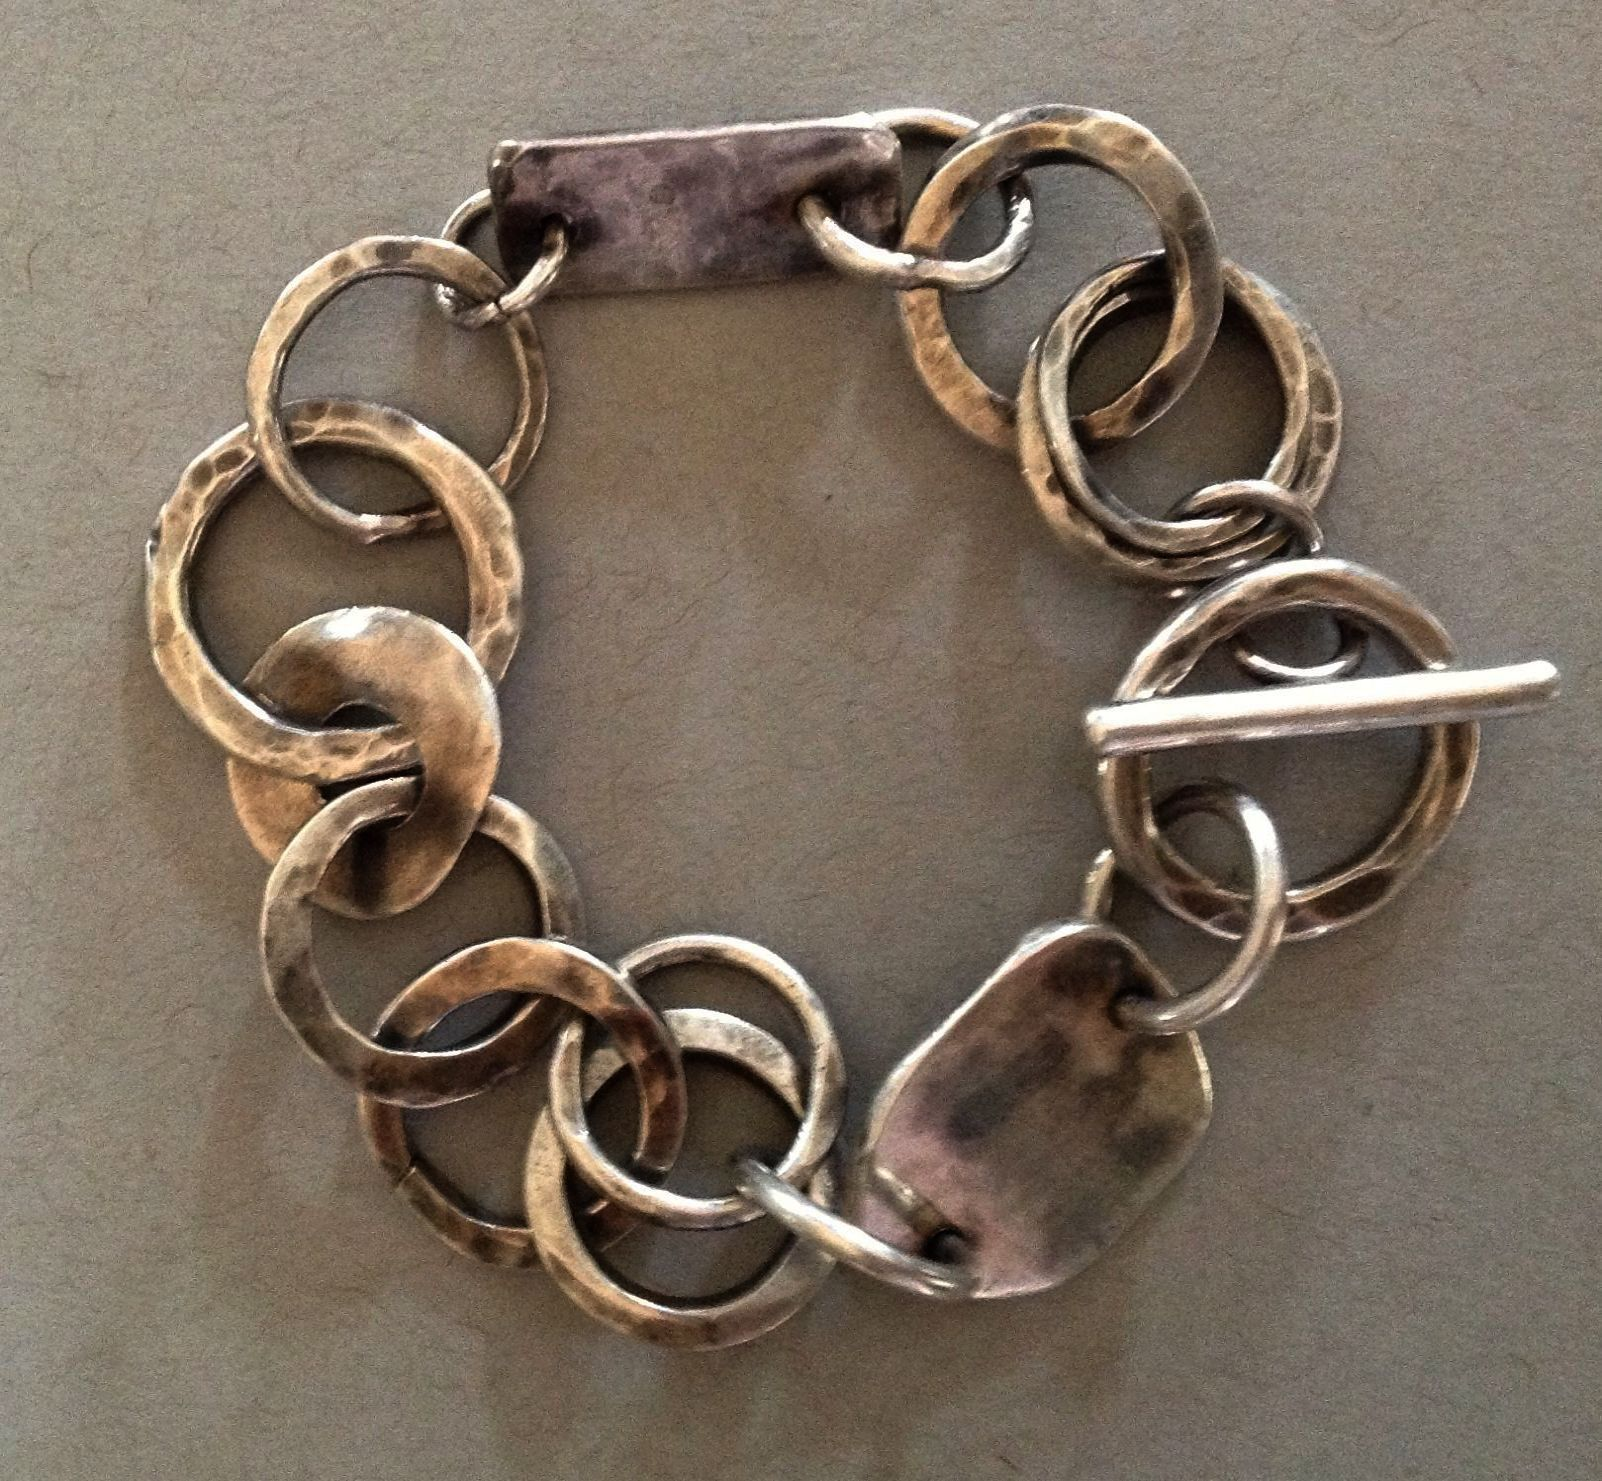 Hand Spectacular accessory metal chain bracelets best photo